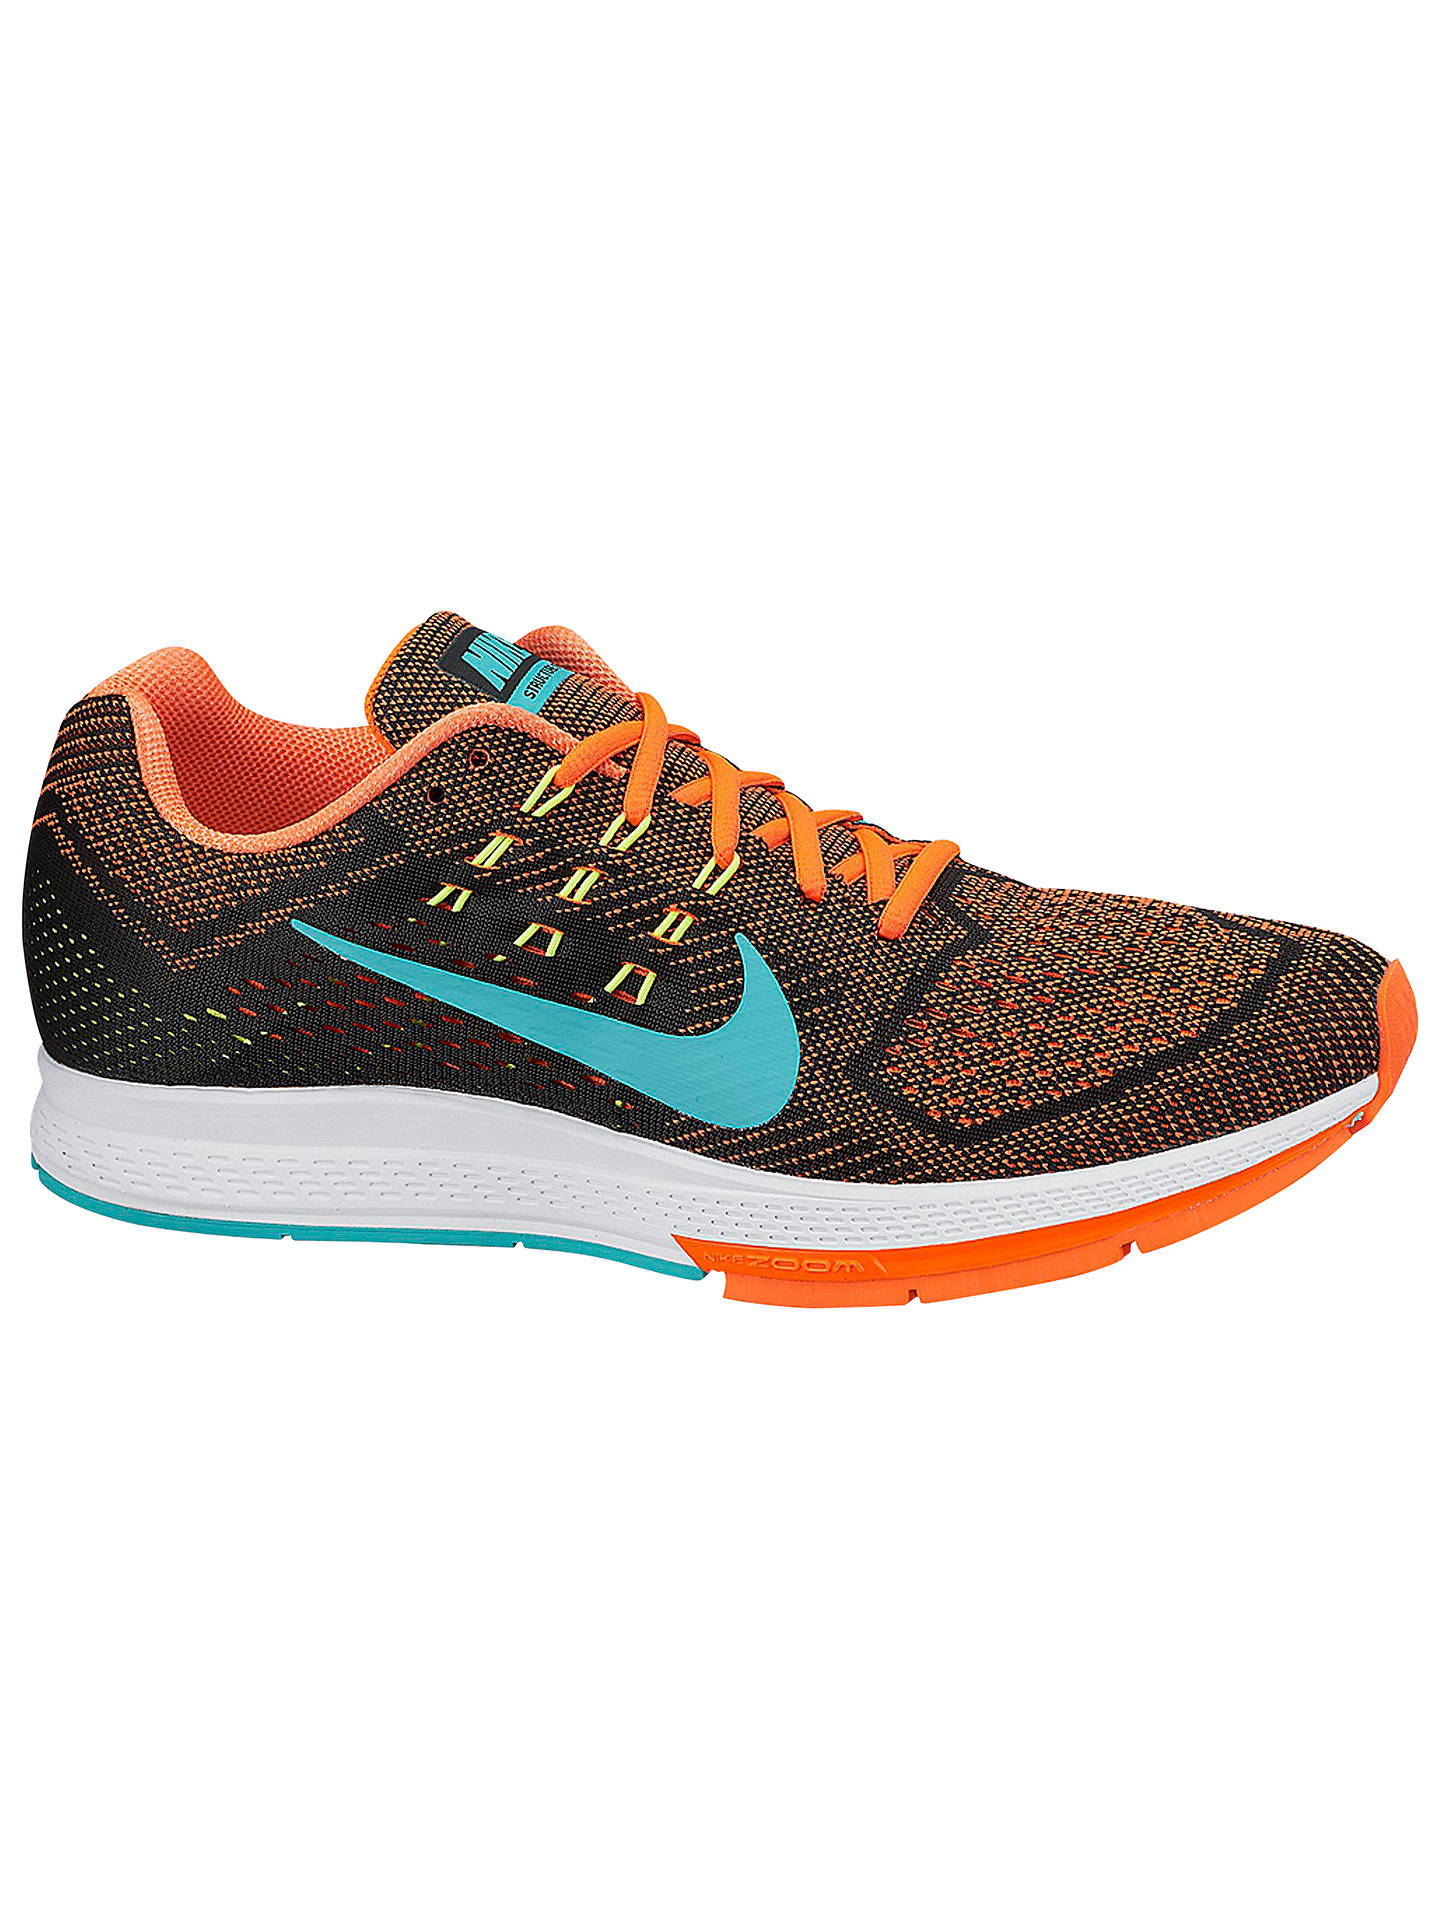 detailed look f183d 0efdb Buy Nike Air Zoom Structure 18 Men s Running Shoes, Hyper Crimson Hyper  Jade, ...